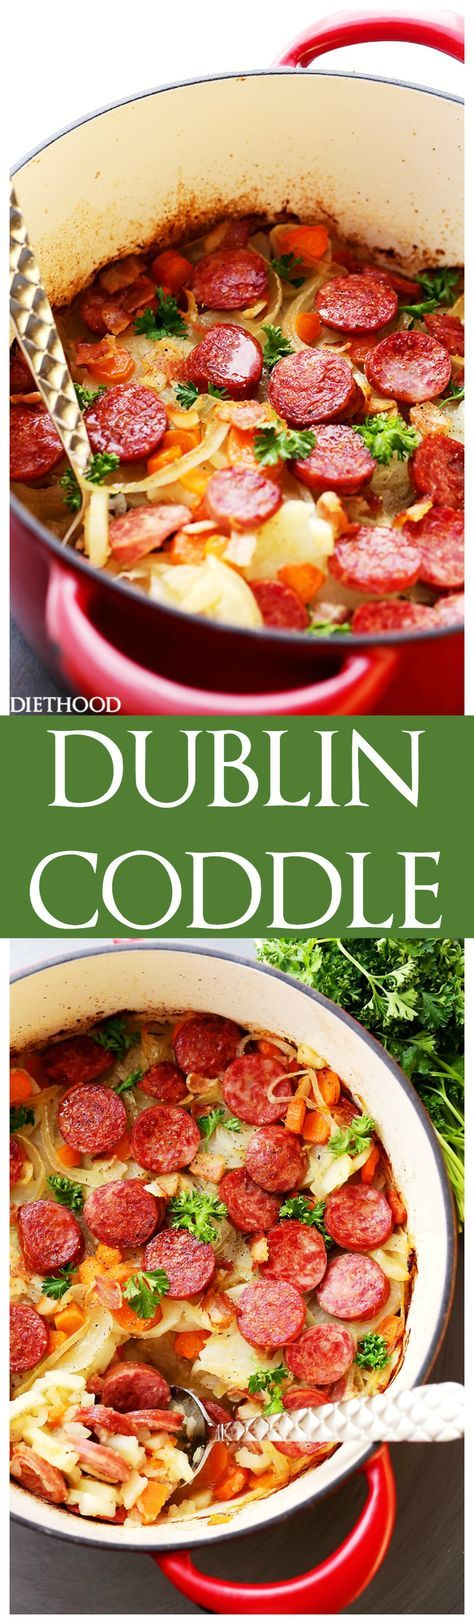 Dublin Coddle Recipe - An easy to make delicious and hearty traditional Irish winter stew with potatoes, sausages, and bacon. *****Wow! It's a lot of prep work, but it is delicious! Five stars!*****